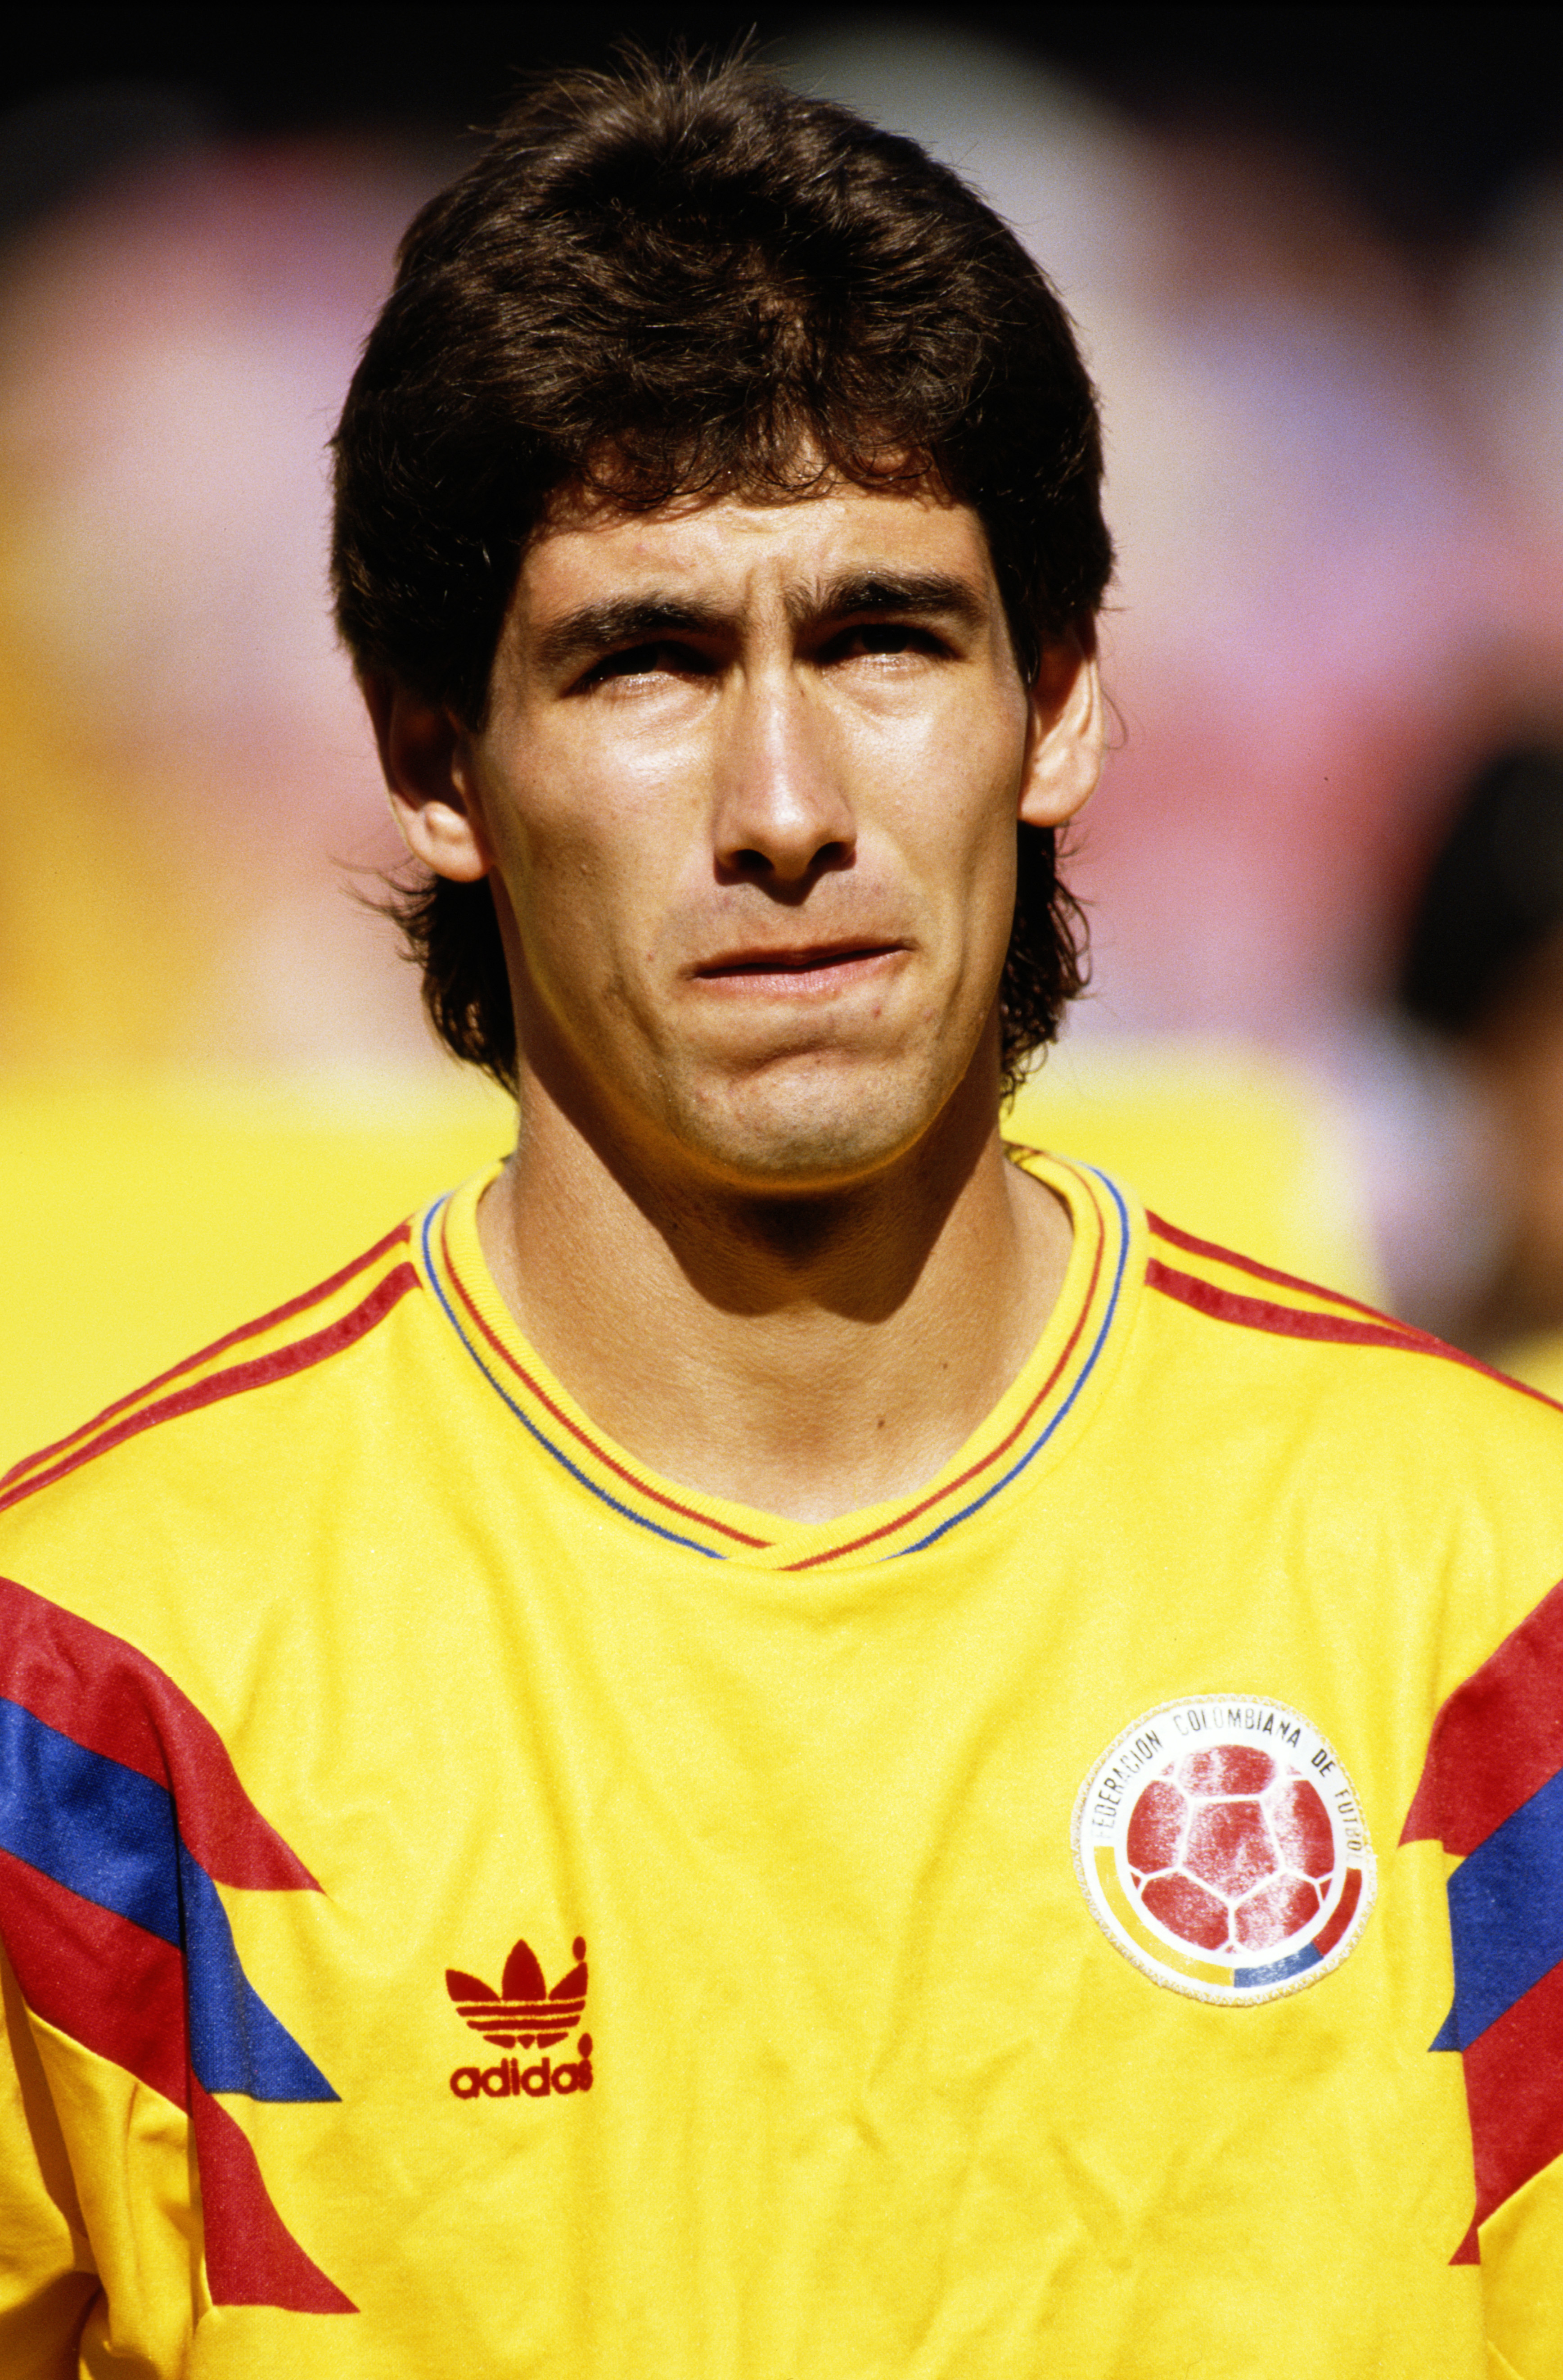 Andres Escobar of Colombia during the Round of 16 match against the Cameroon at the 1990 FIFA World Cup on 23 June 1990 at the San Paolo Stadium in Naples, Italy. The match resulted in an 2-1 extra time victory for the Camaroon and ultimately the murder o